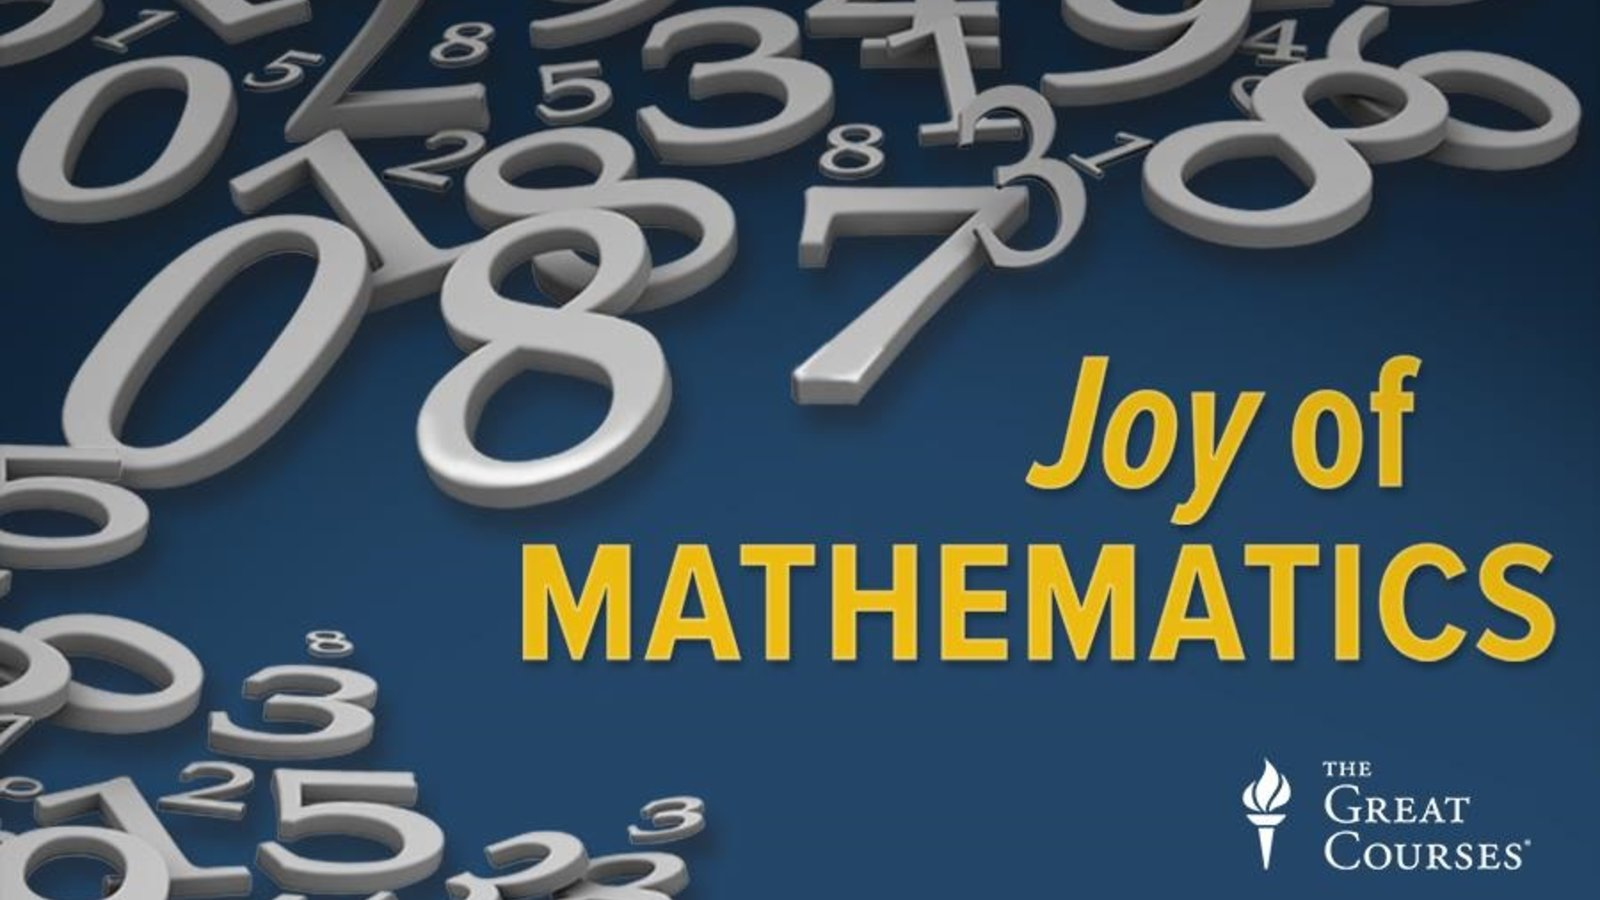 The Joy of Mathematics